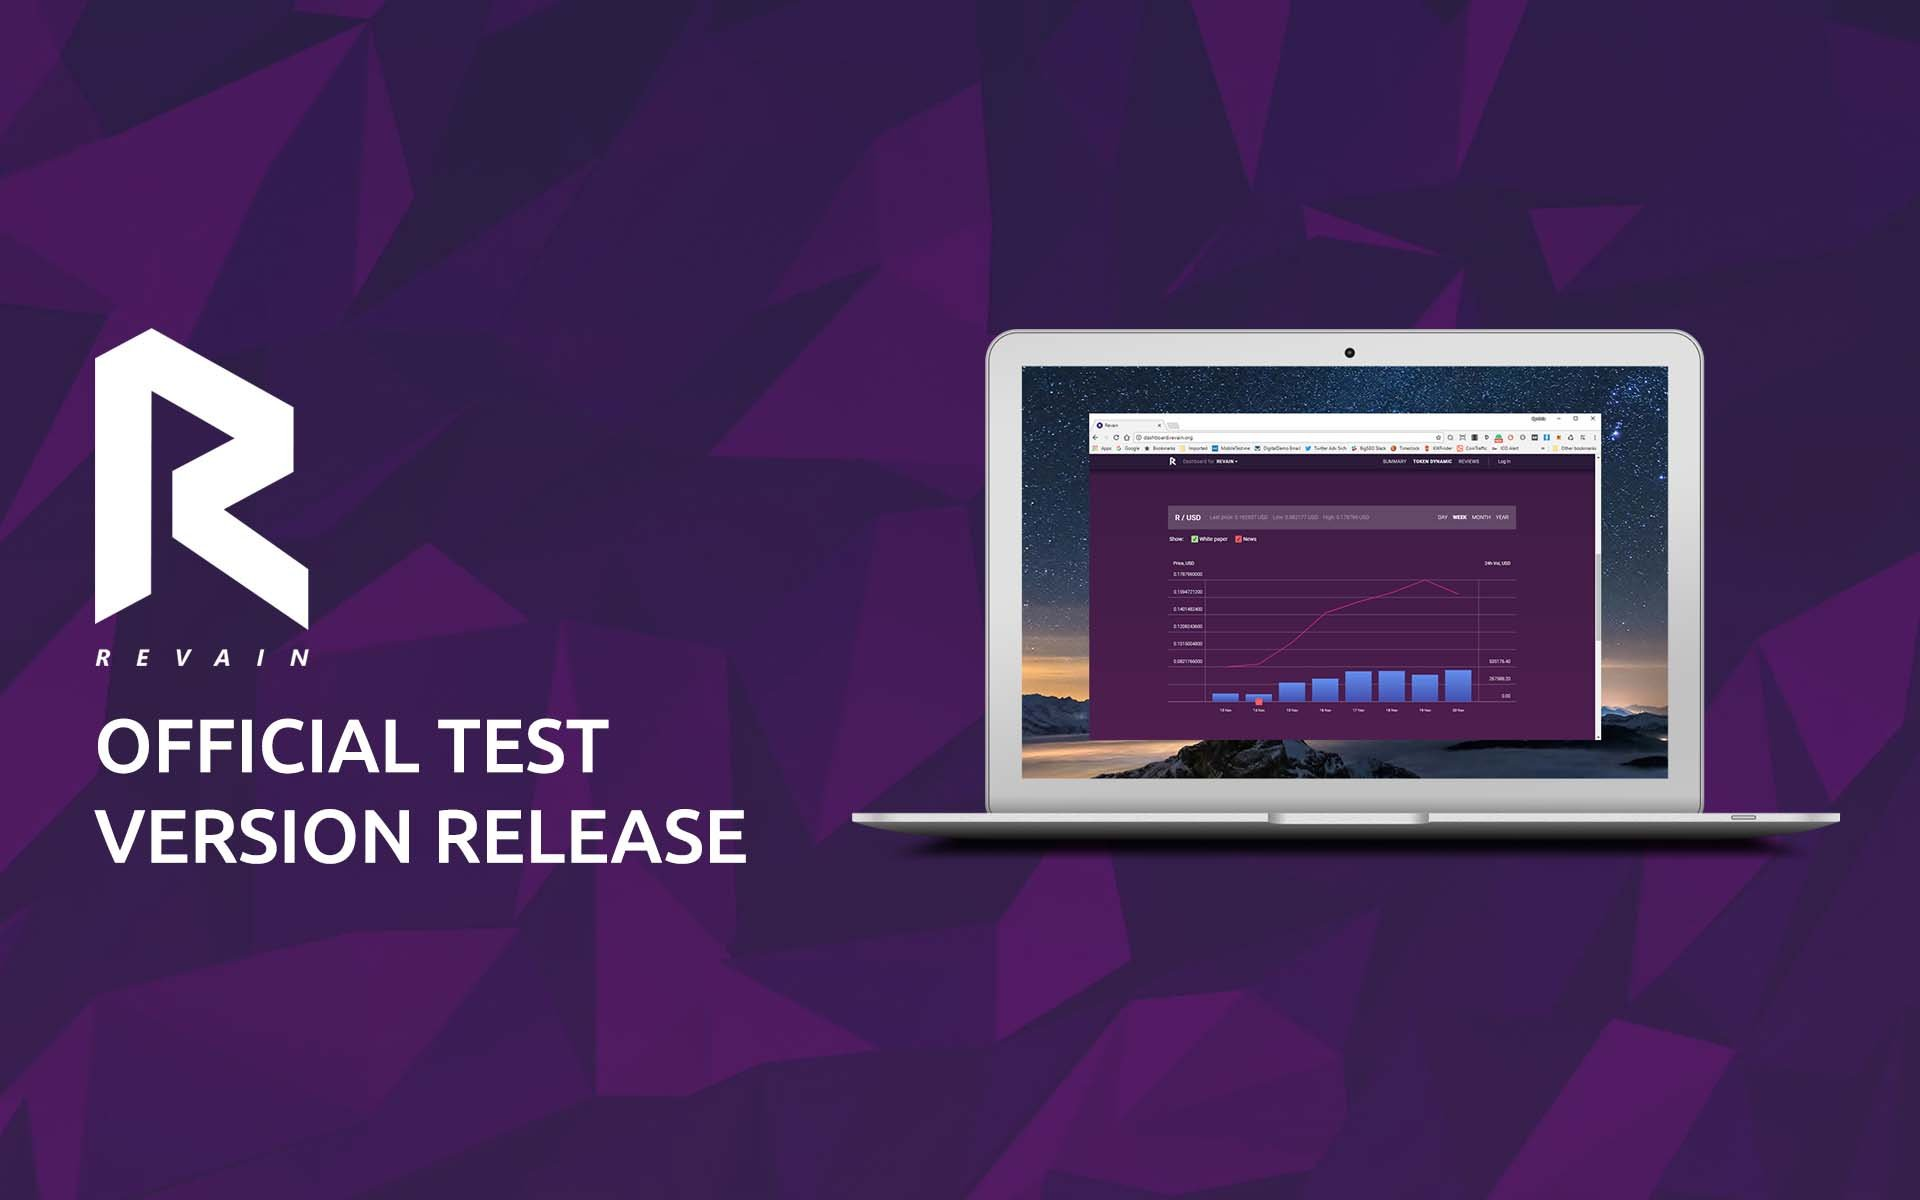 Revain Announces Release of the First Test Version of the Platform